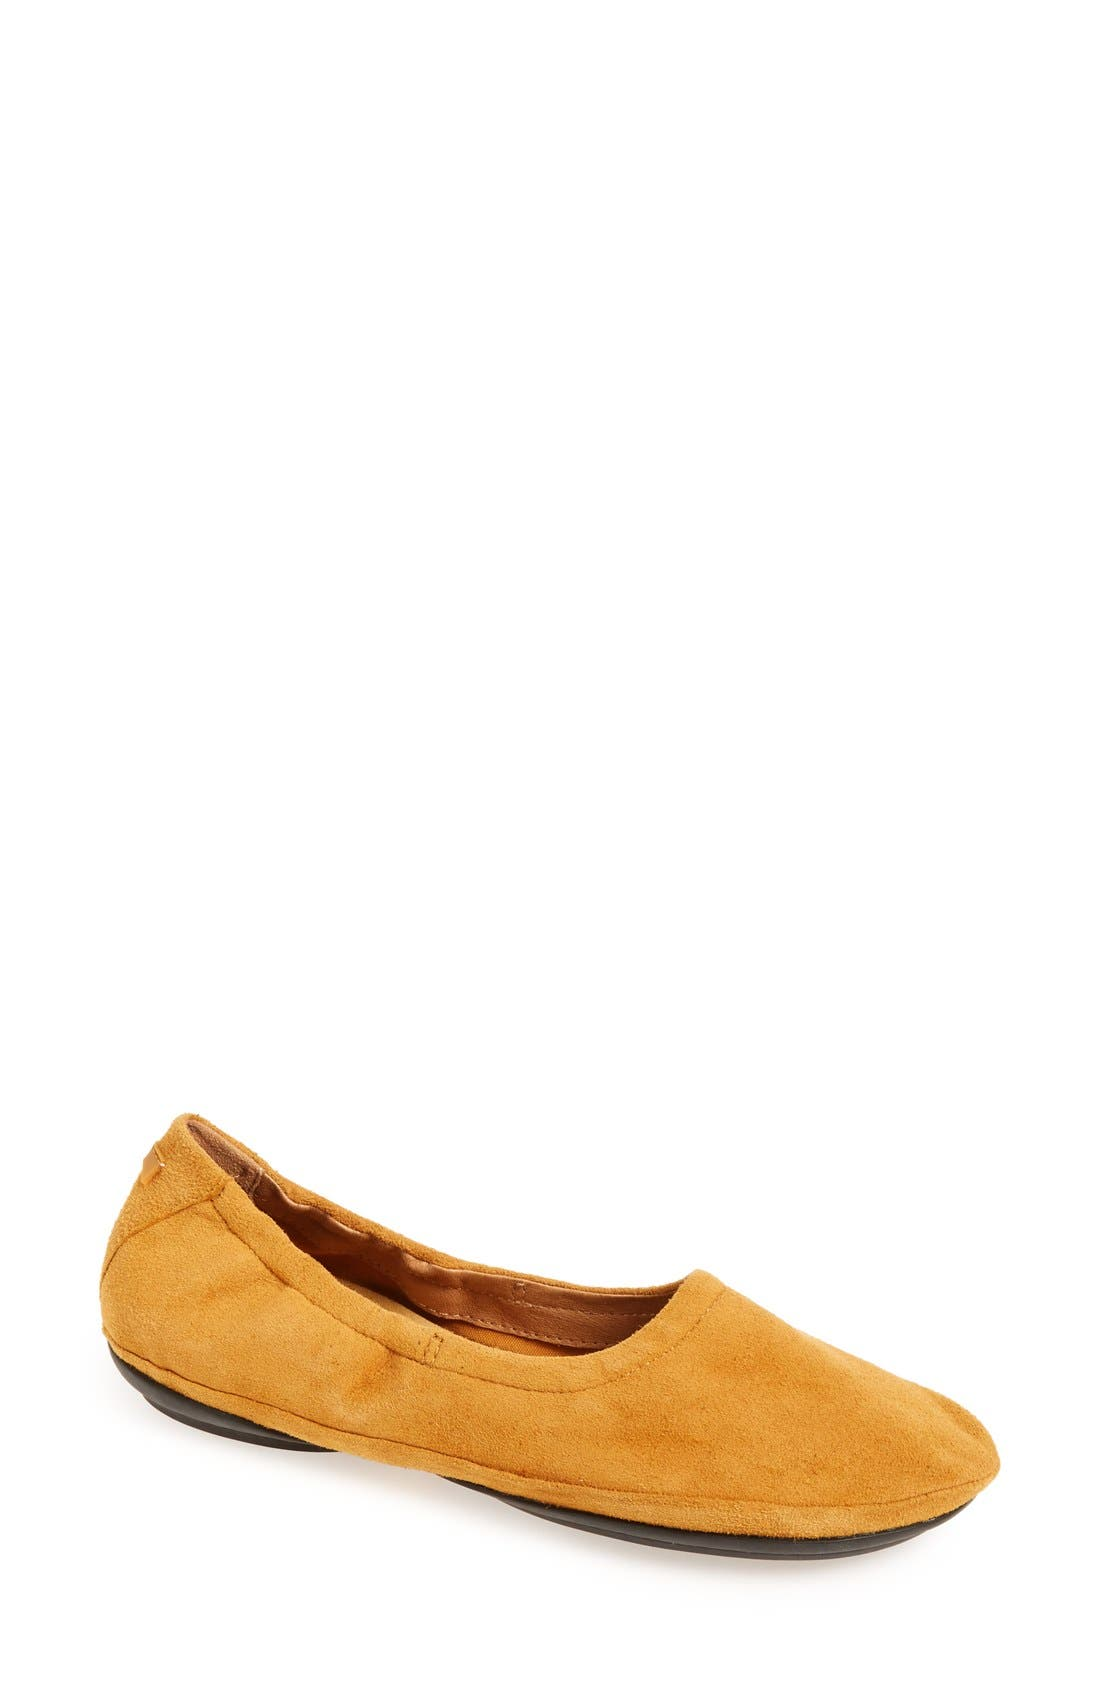 'Right Nina' Ballet Flat,                         Main,                         color, Mustard Suede